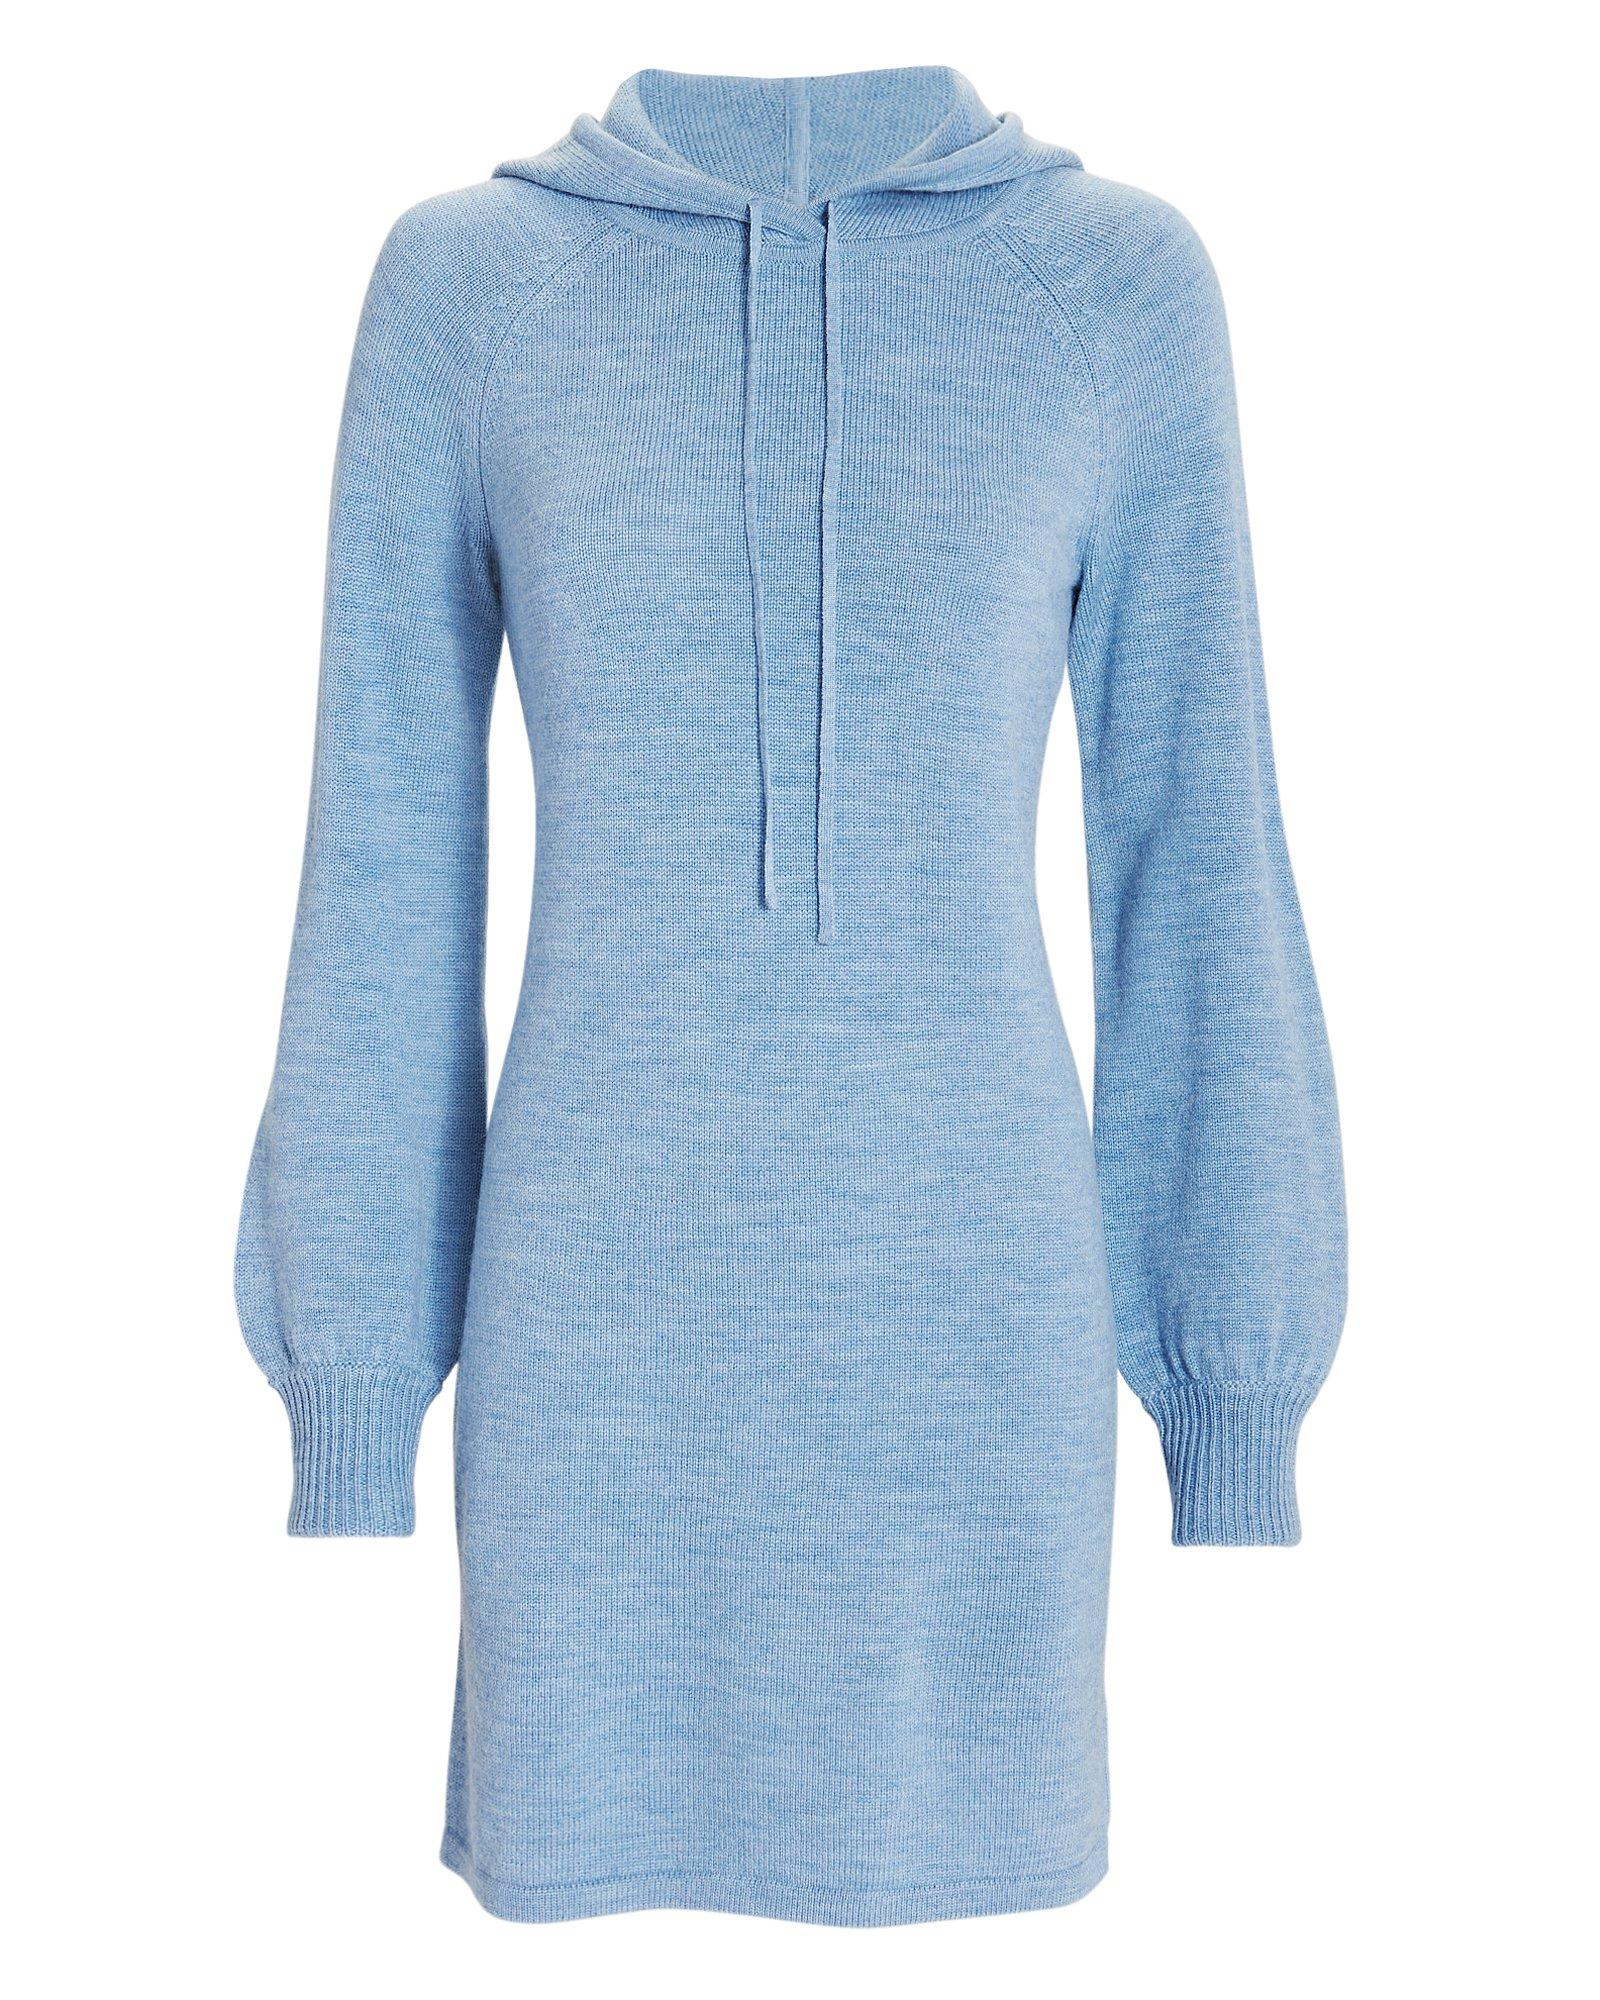 Exclusive For Intermix Tess Hooded Dress